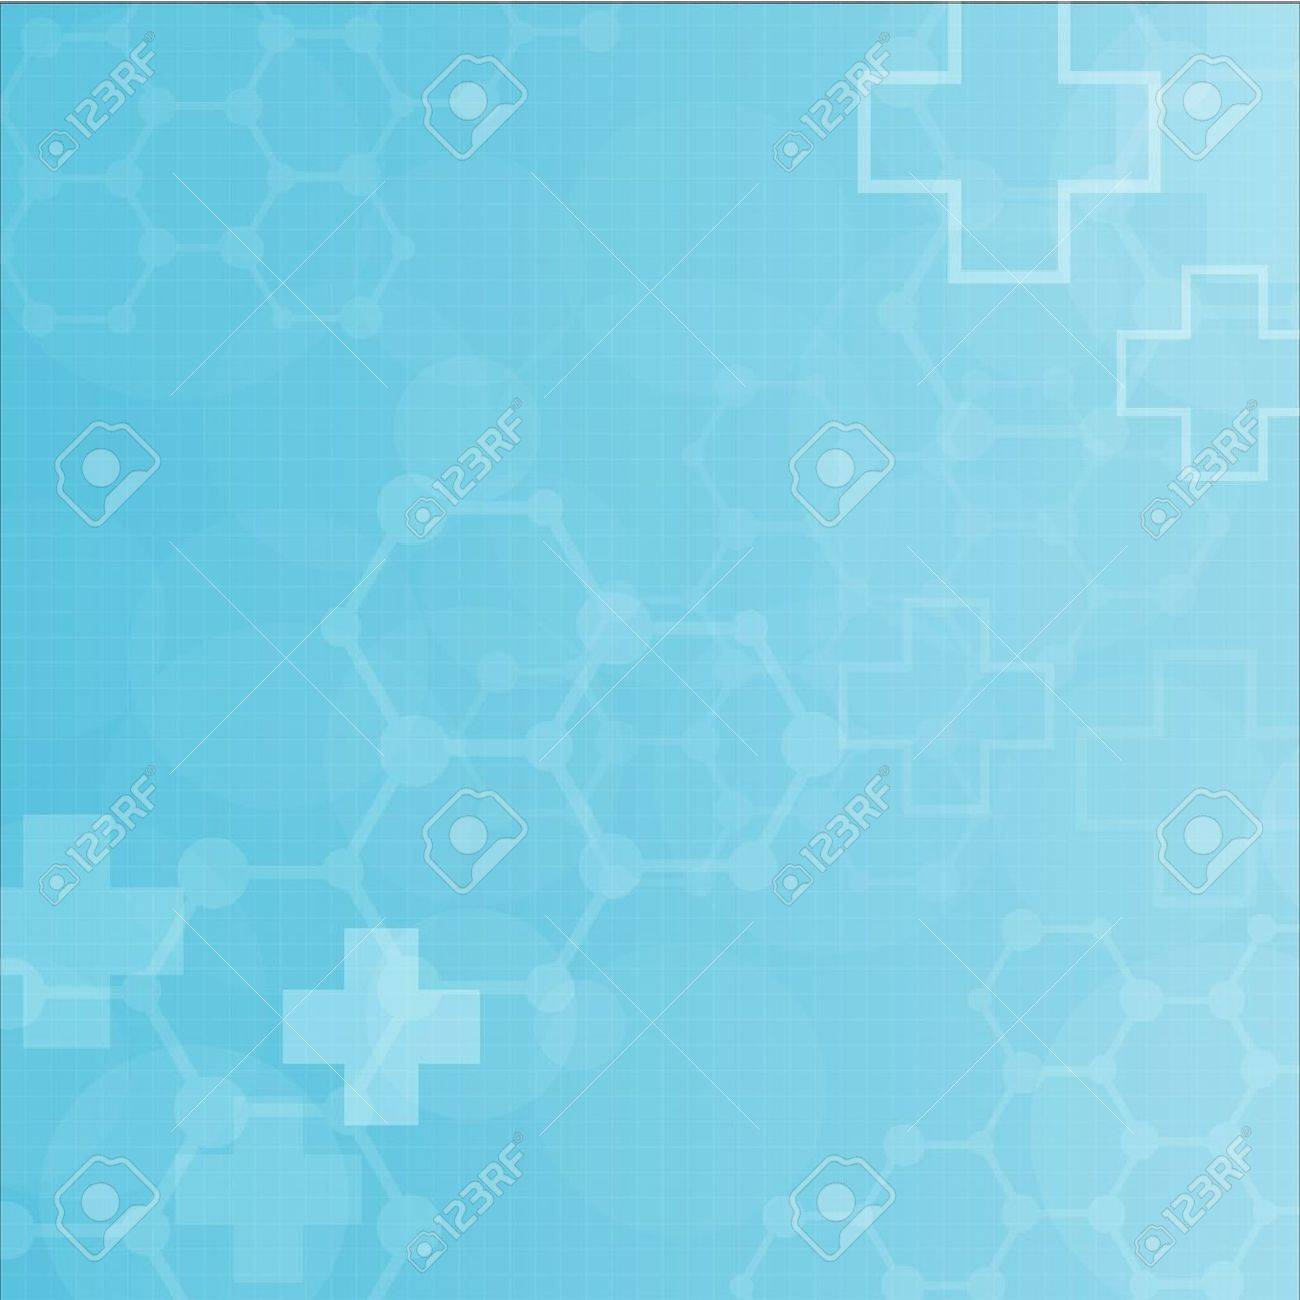 Abstract molecules medical background - 18387880